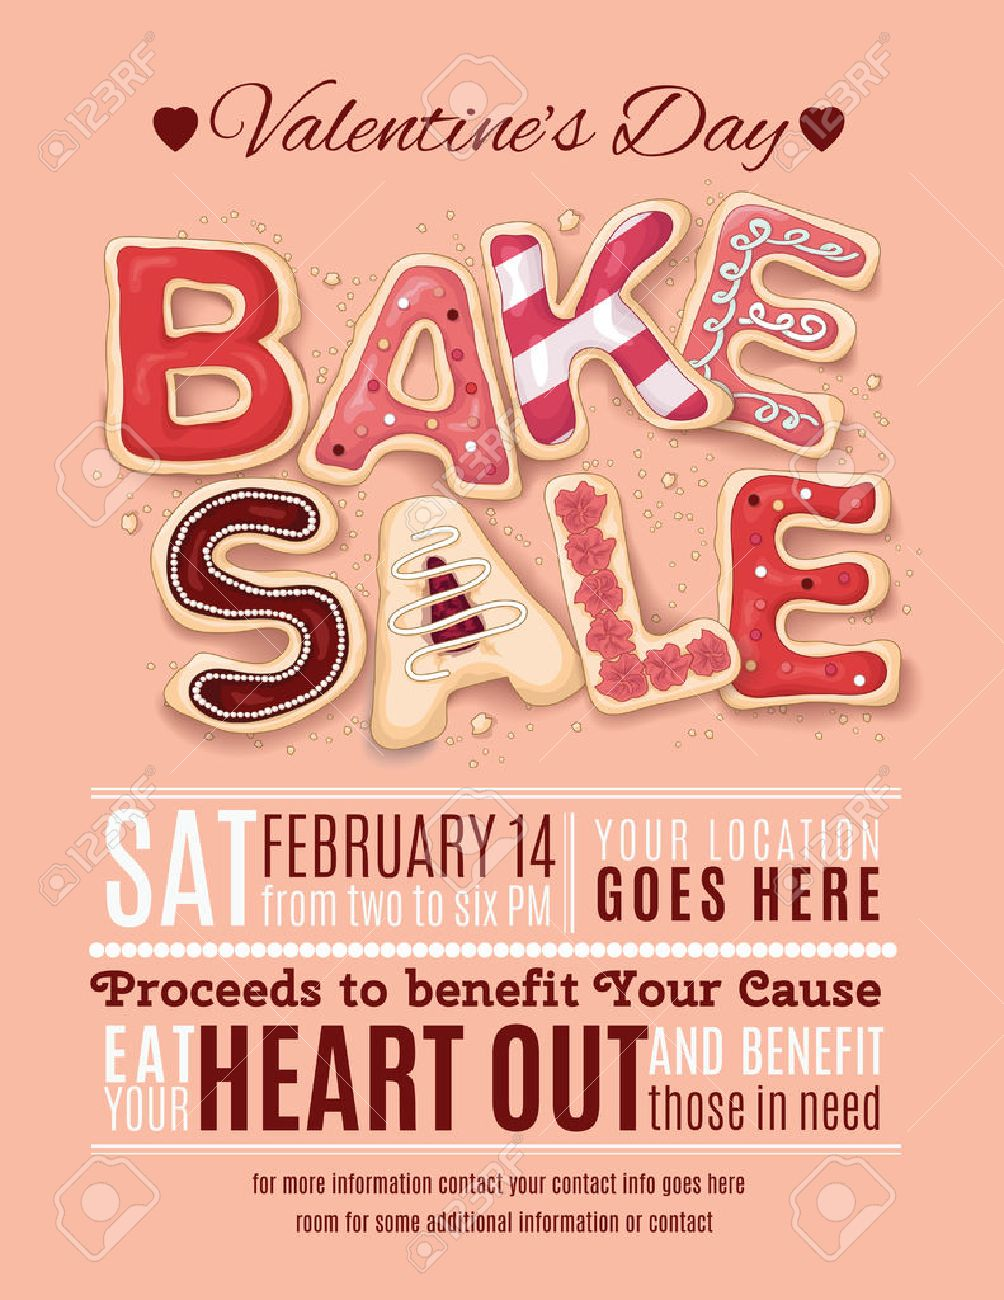 Hand Drawn Decorated Cookies That Say Bake Sale For A Valentine S